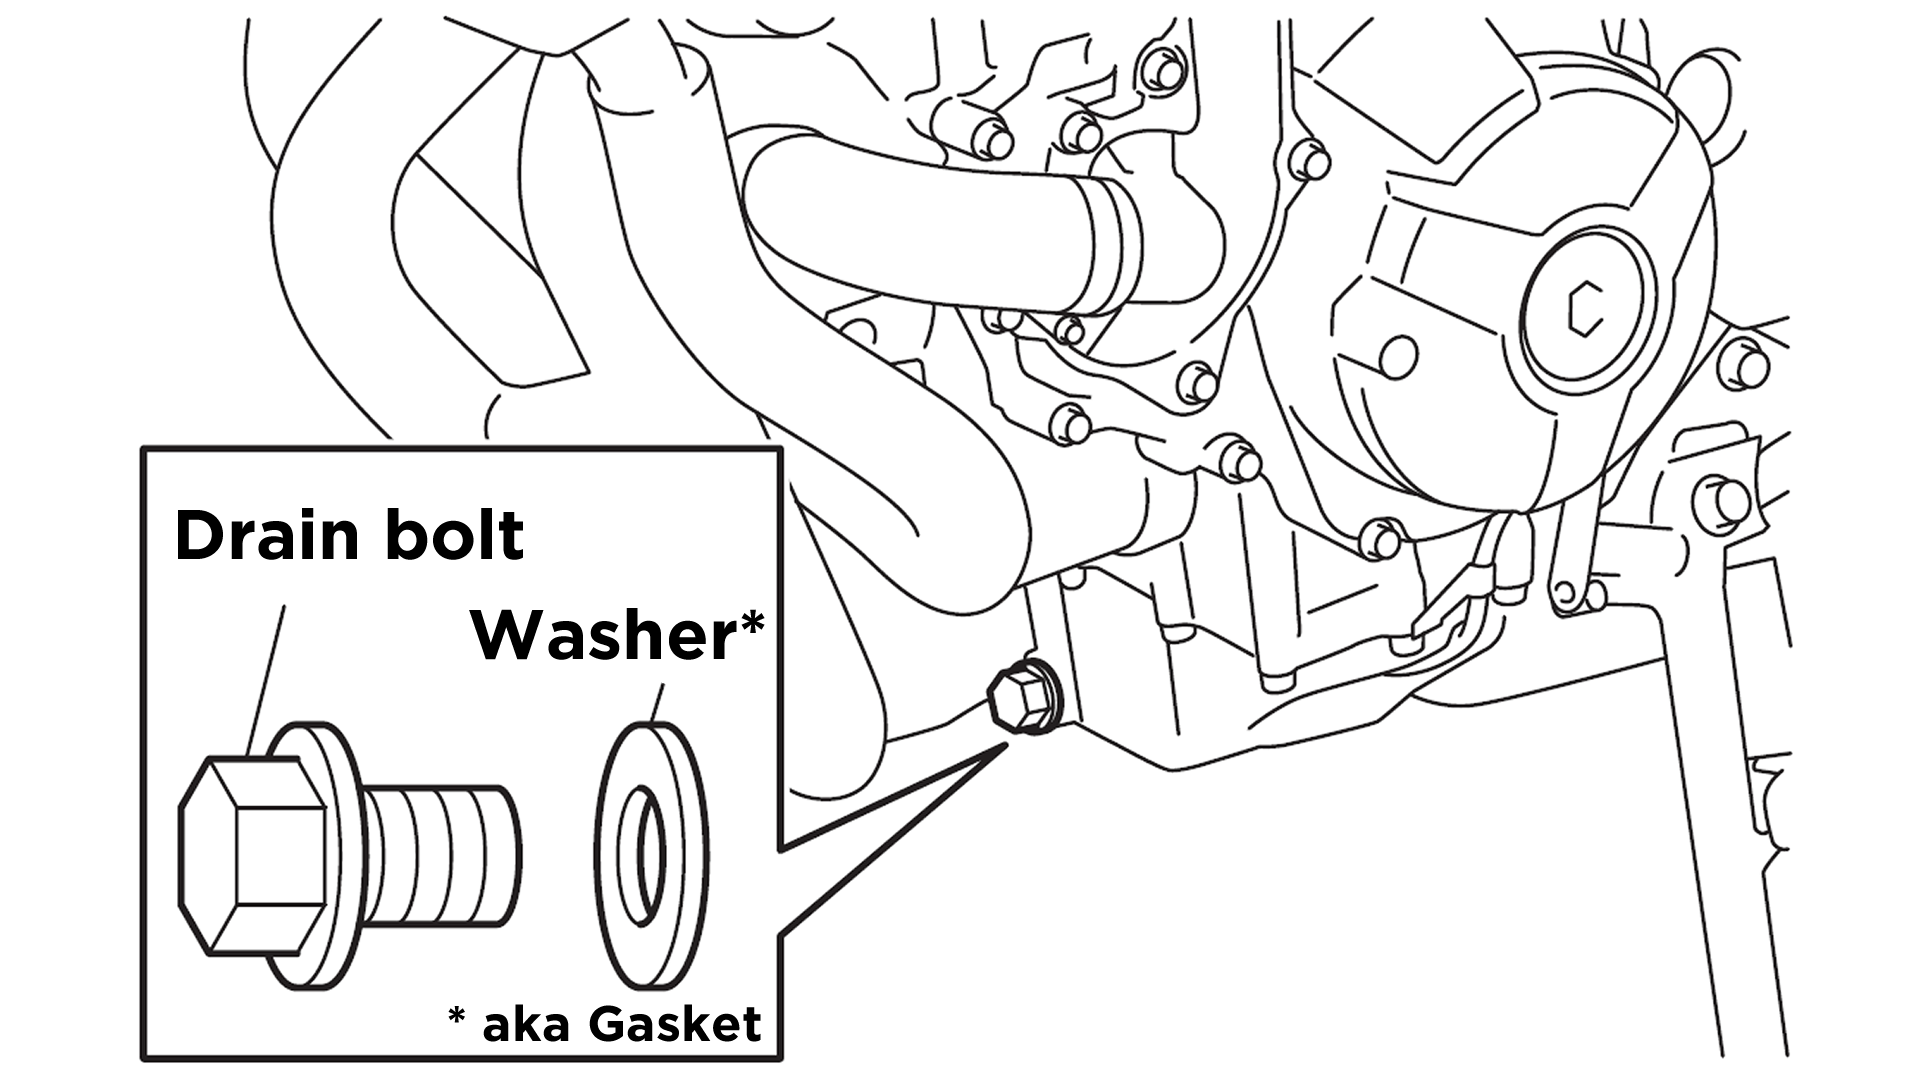 Step 2) Remove drain bolt and washer